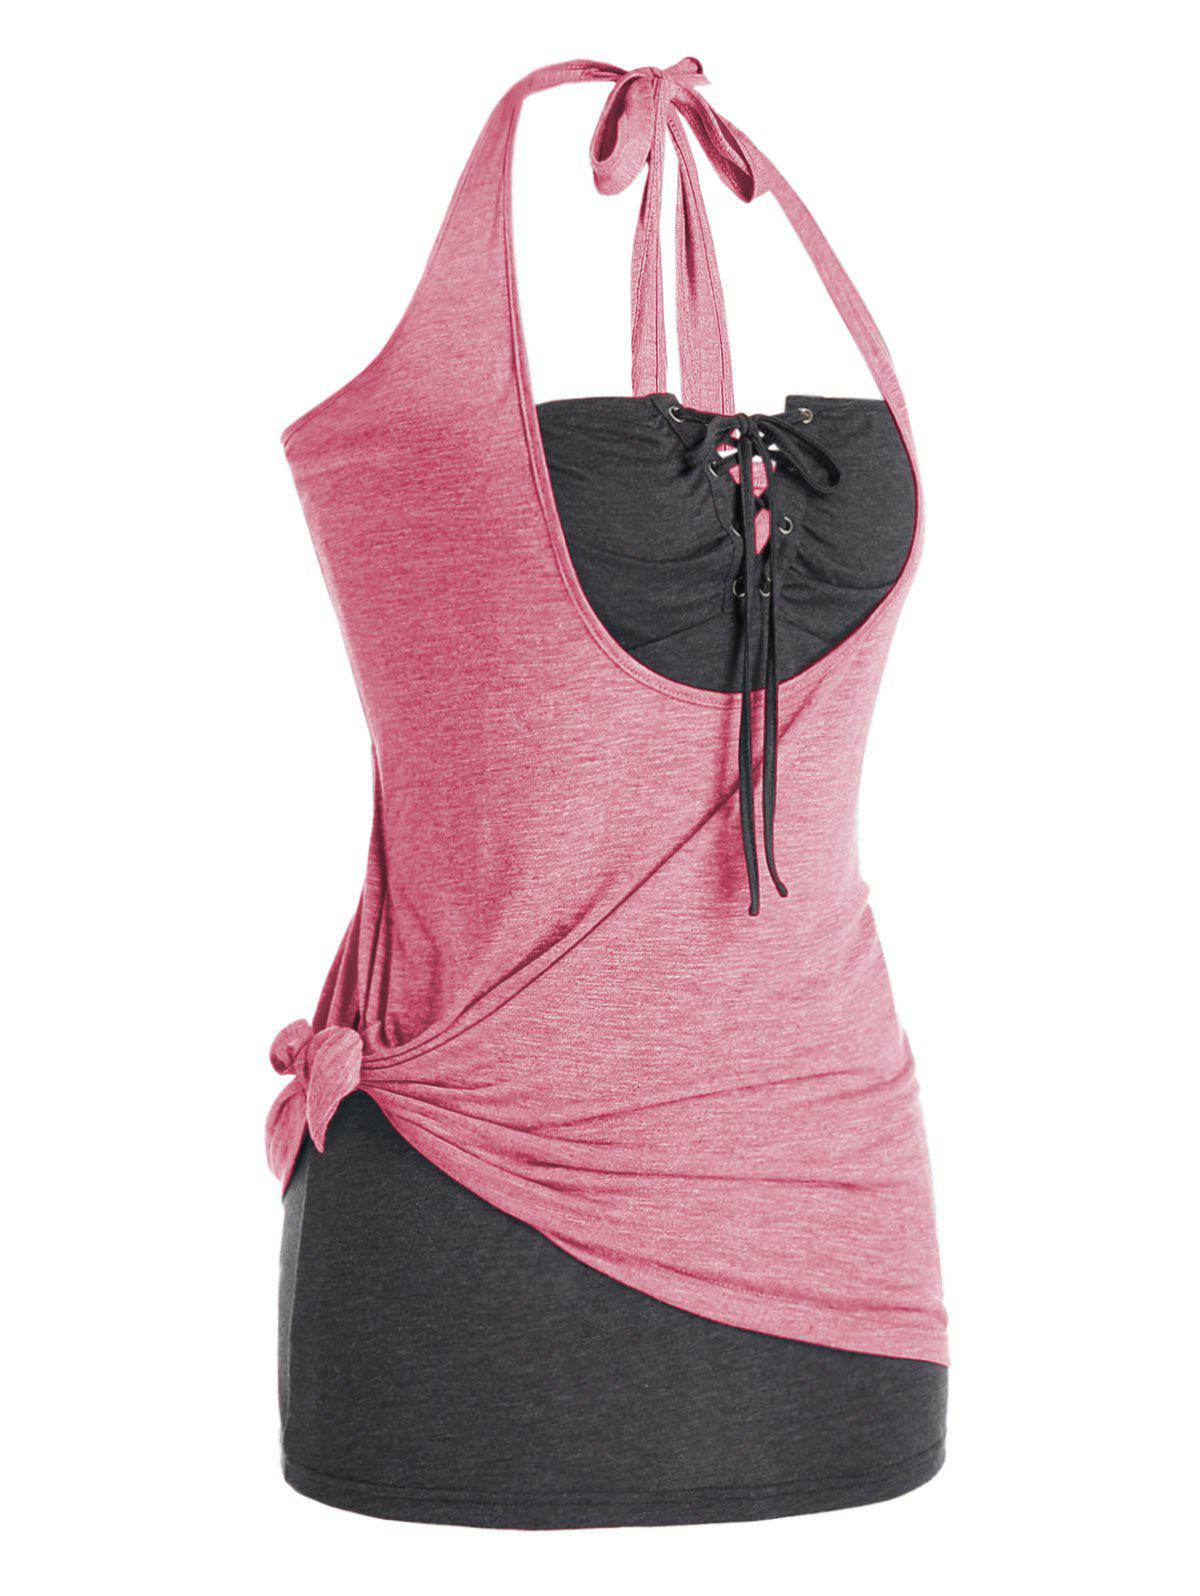 Plus Size Halter Knotted Top and Lace Up Strapless Top Set - PINK 5X